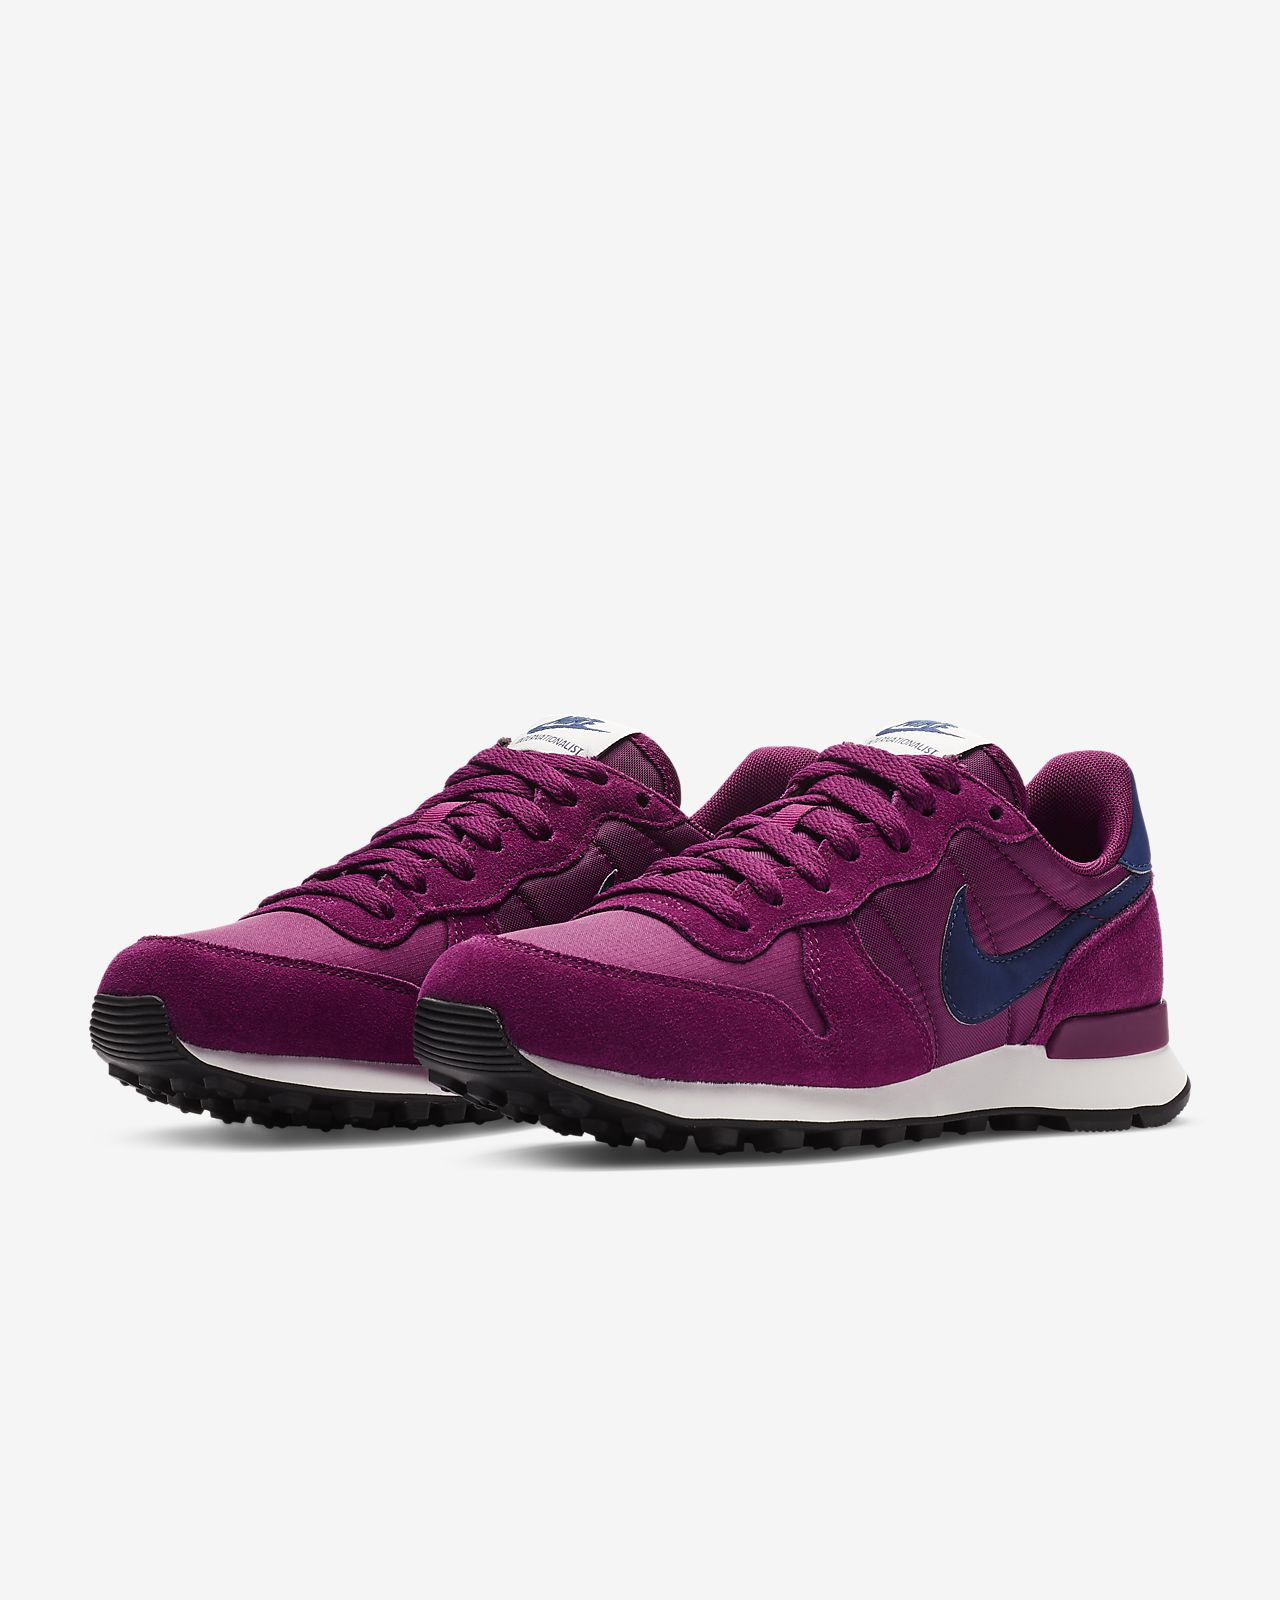 best website 61ae9 a8c23 Low Resolution Nike Internationalist Women s Shoe Nike Internationalist  Women s Shoe